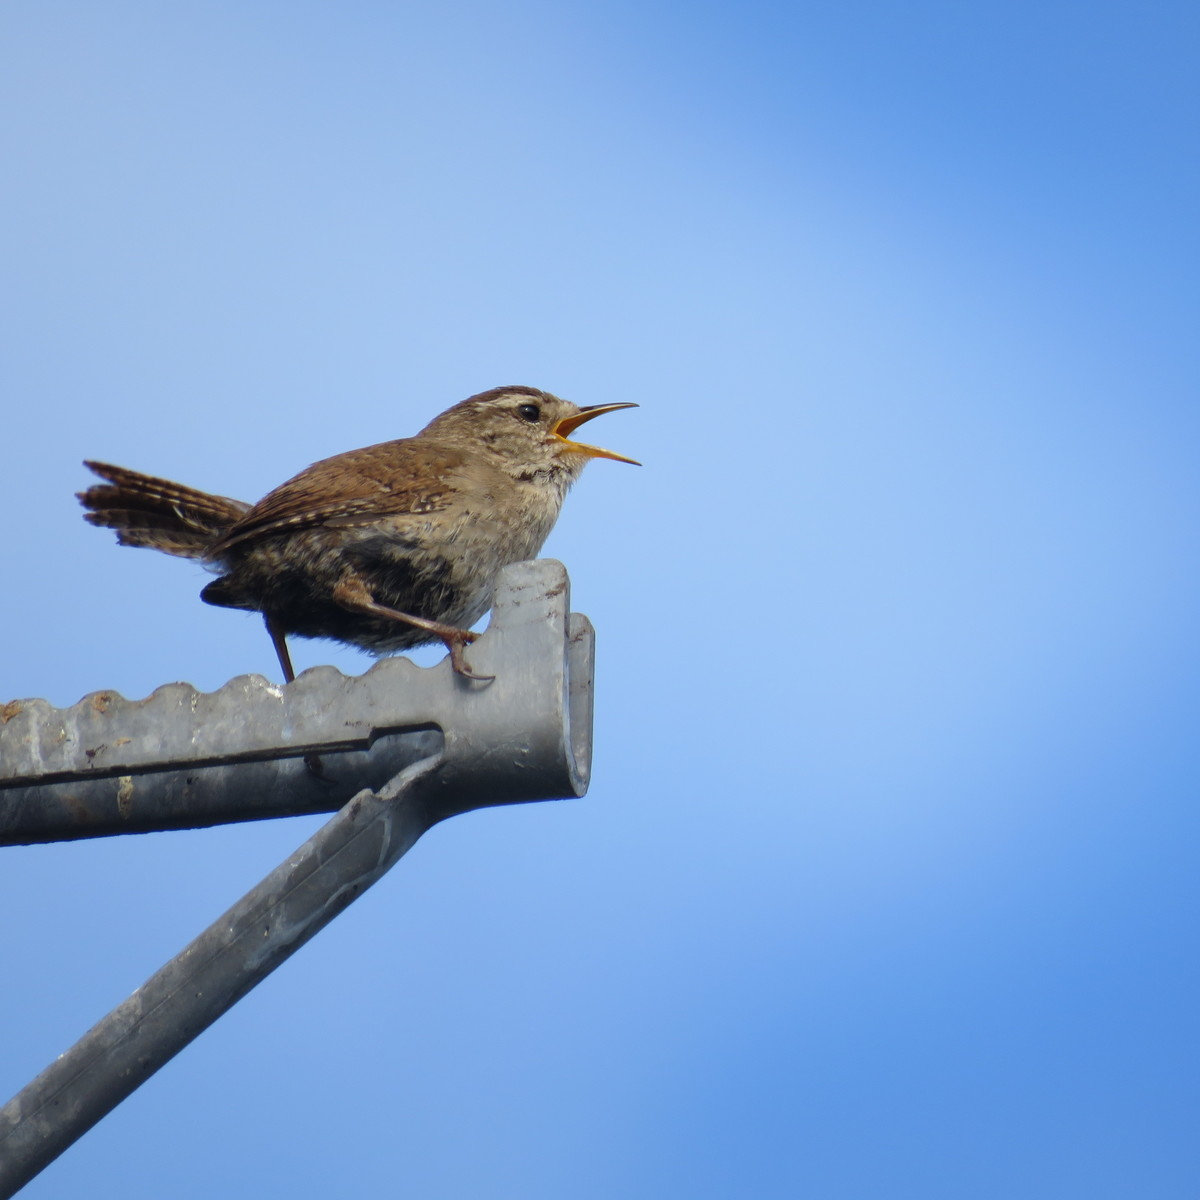 Singing wren on Chat Moss, Irlam